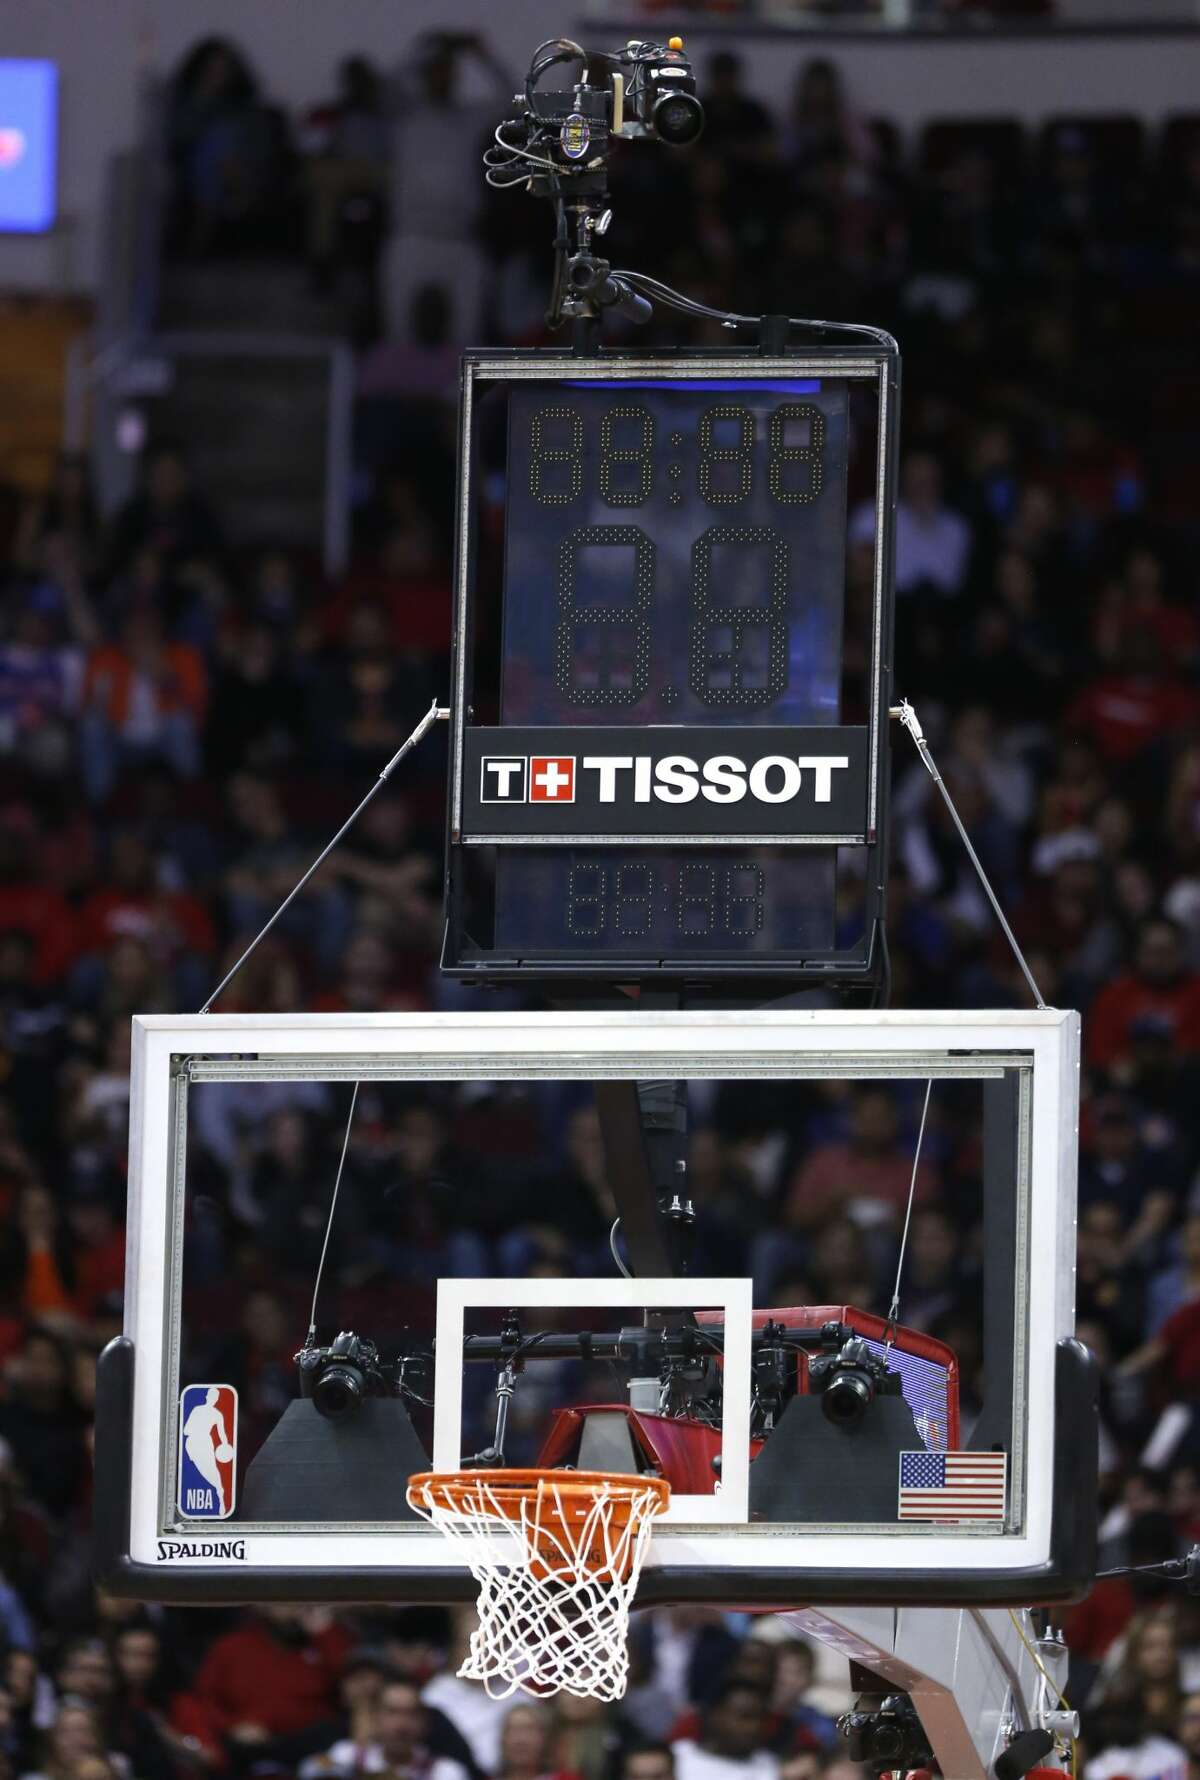 The clock above the basket was out during an NBA basketball game between the Houston Rockets and the New York Knicks on Monday, Feb. 24, 2020, at Toyota Center in Houston. A clock was placed on the floor during the game.